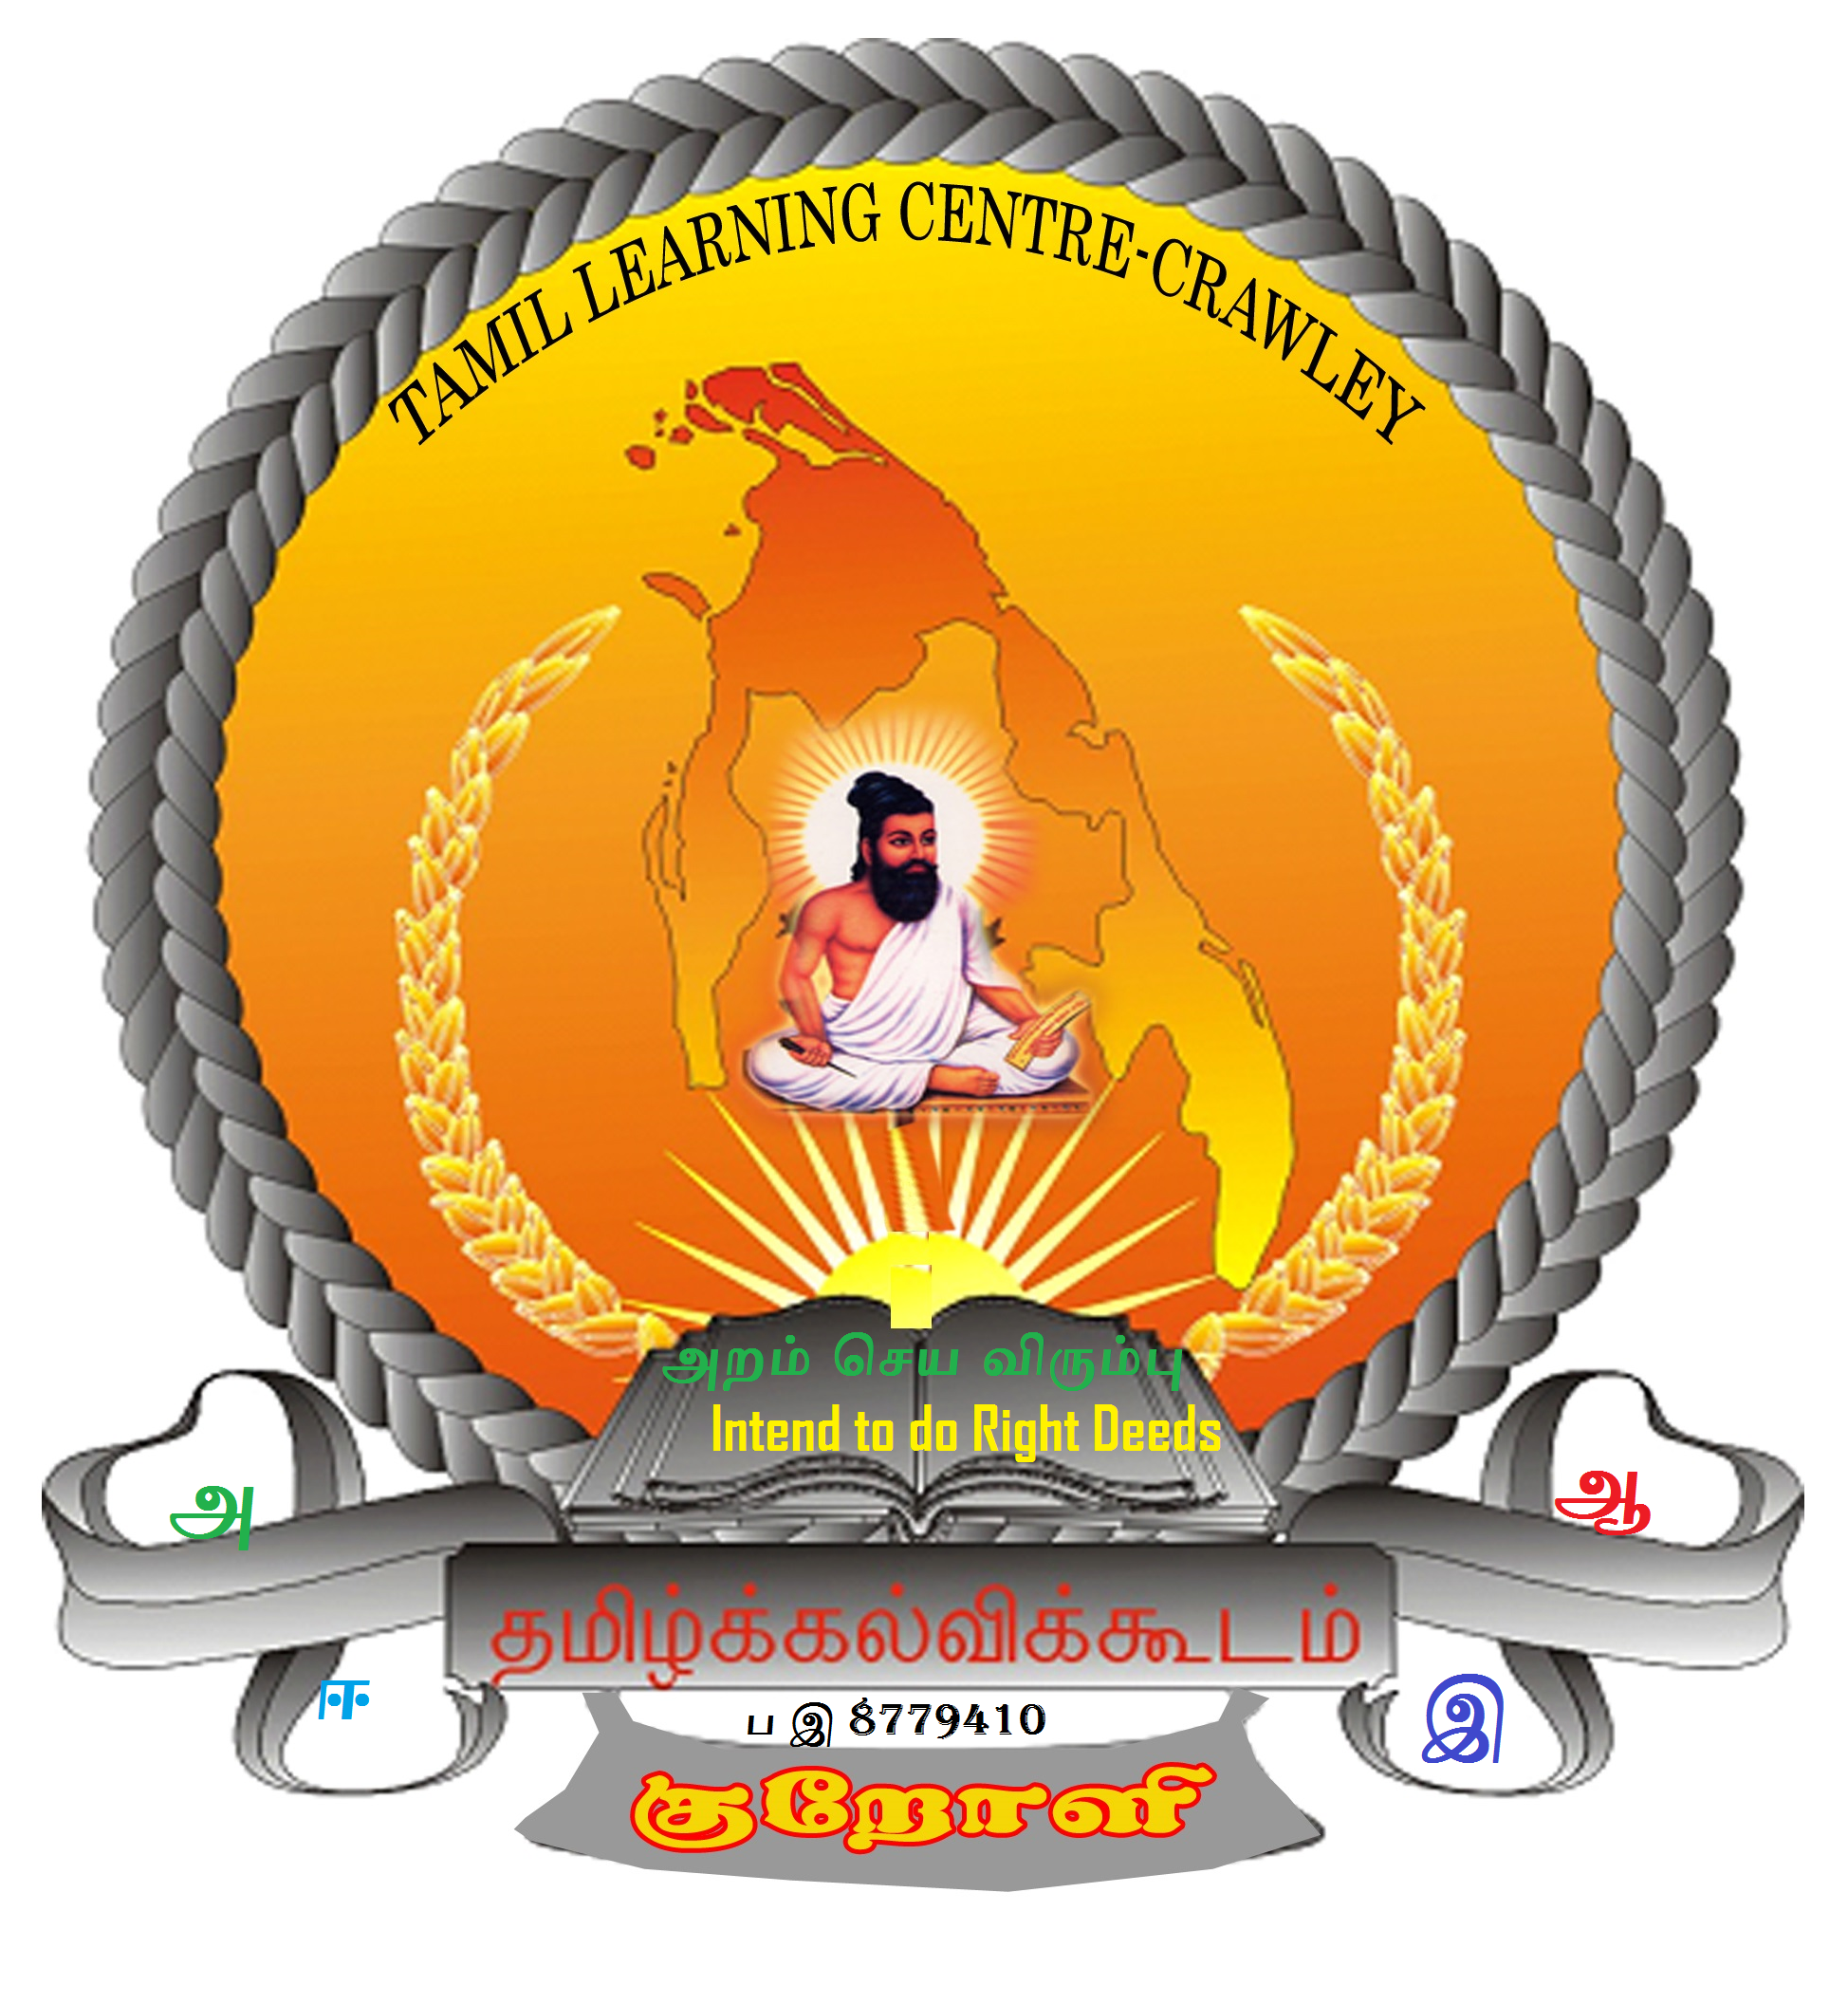 Tamil Learning Centre